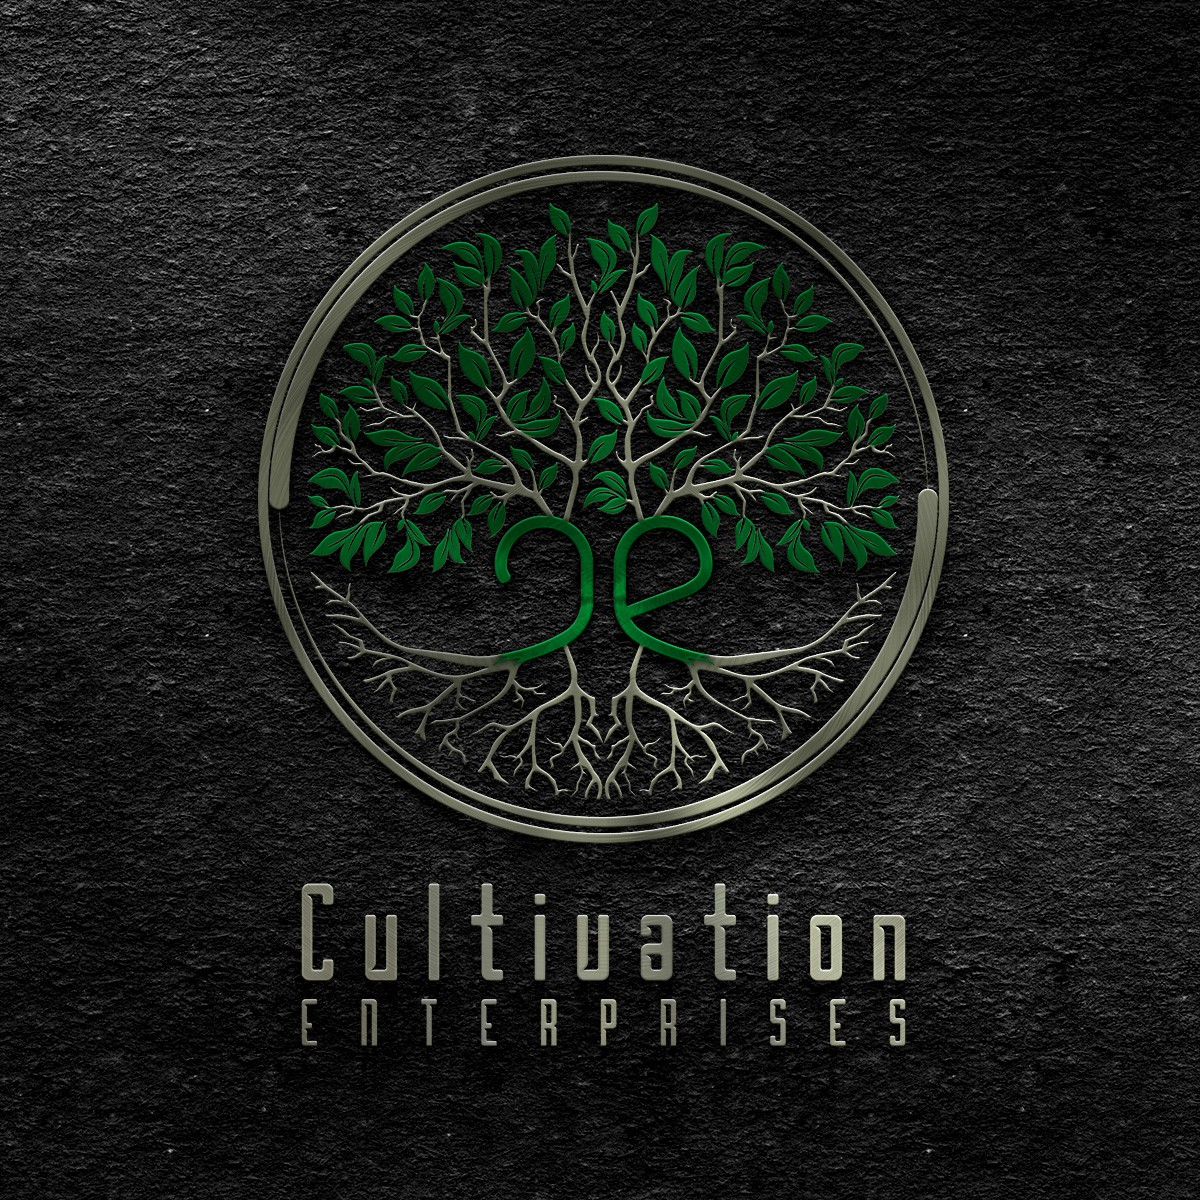 Combine a tree and a circle to form the logo for Cultivation Enterprises